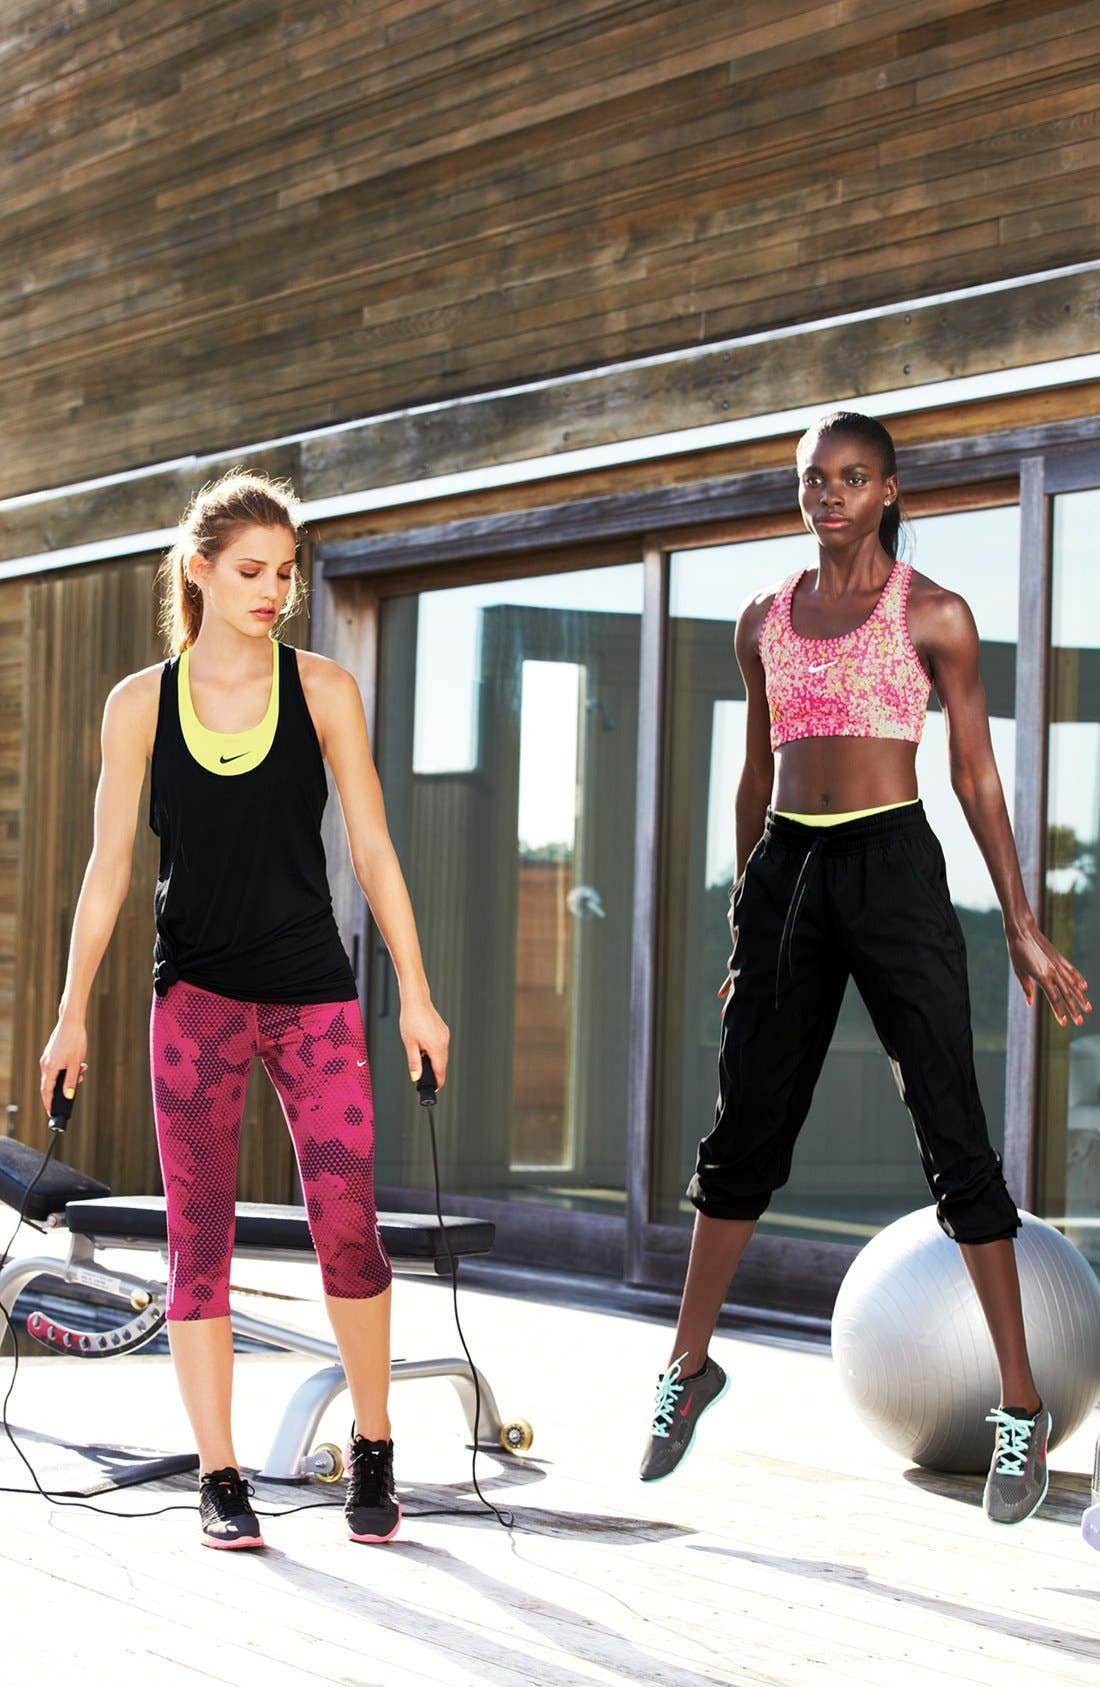 Main Image - Nike Sports Bra & Pants